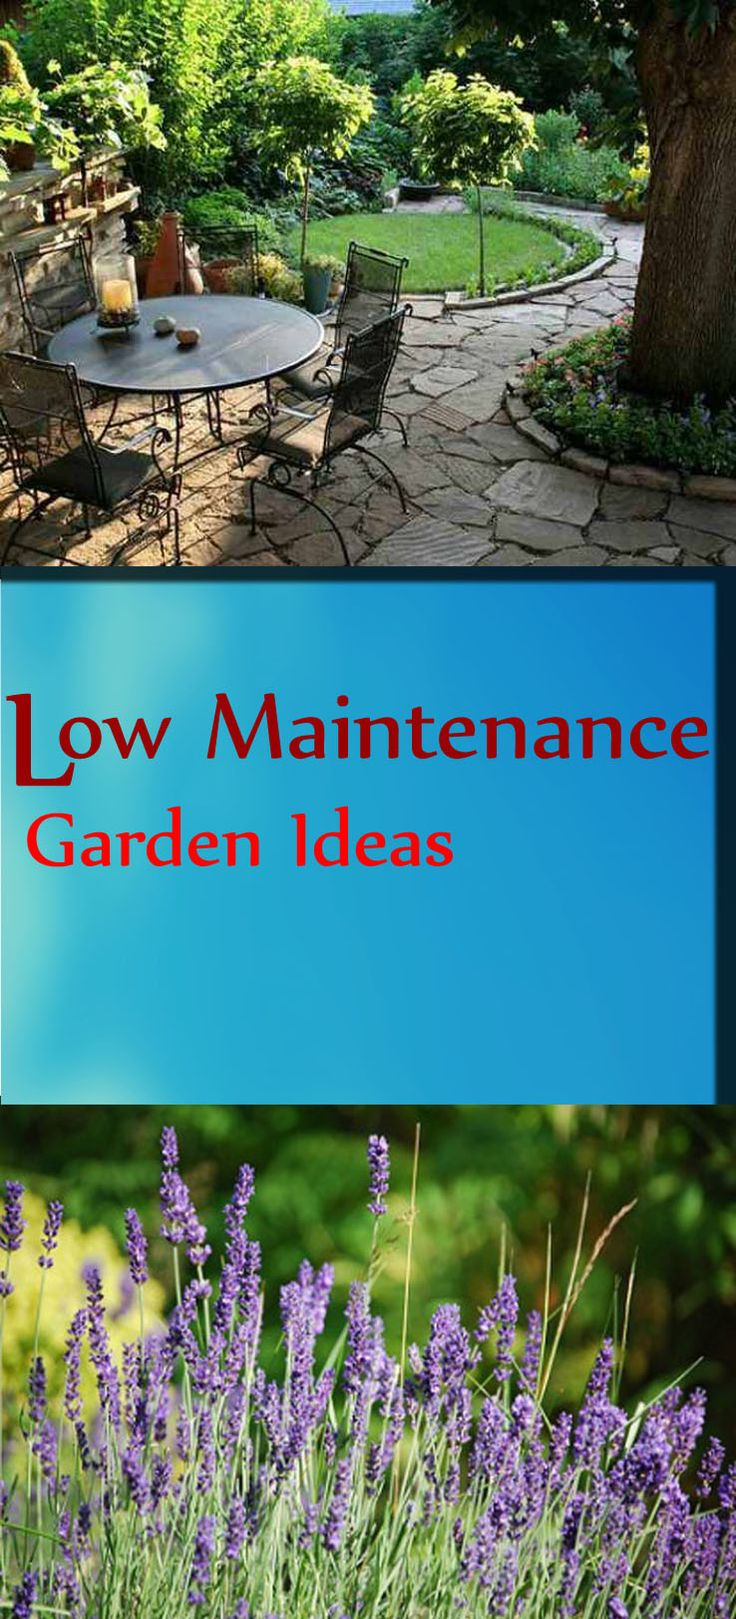 25 beautiful low maintenance garden ideas on pinterest for Low maintenance garden ideas